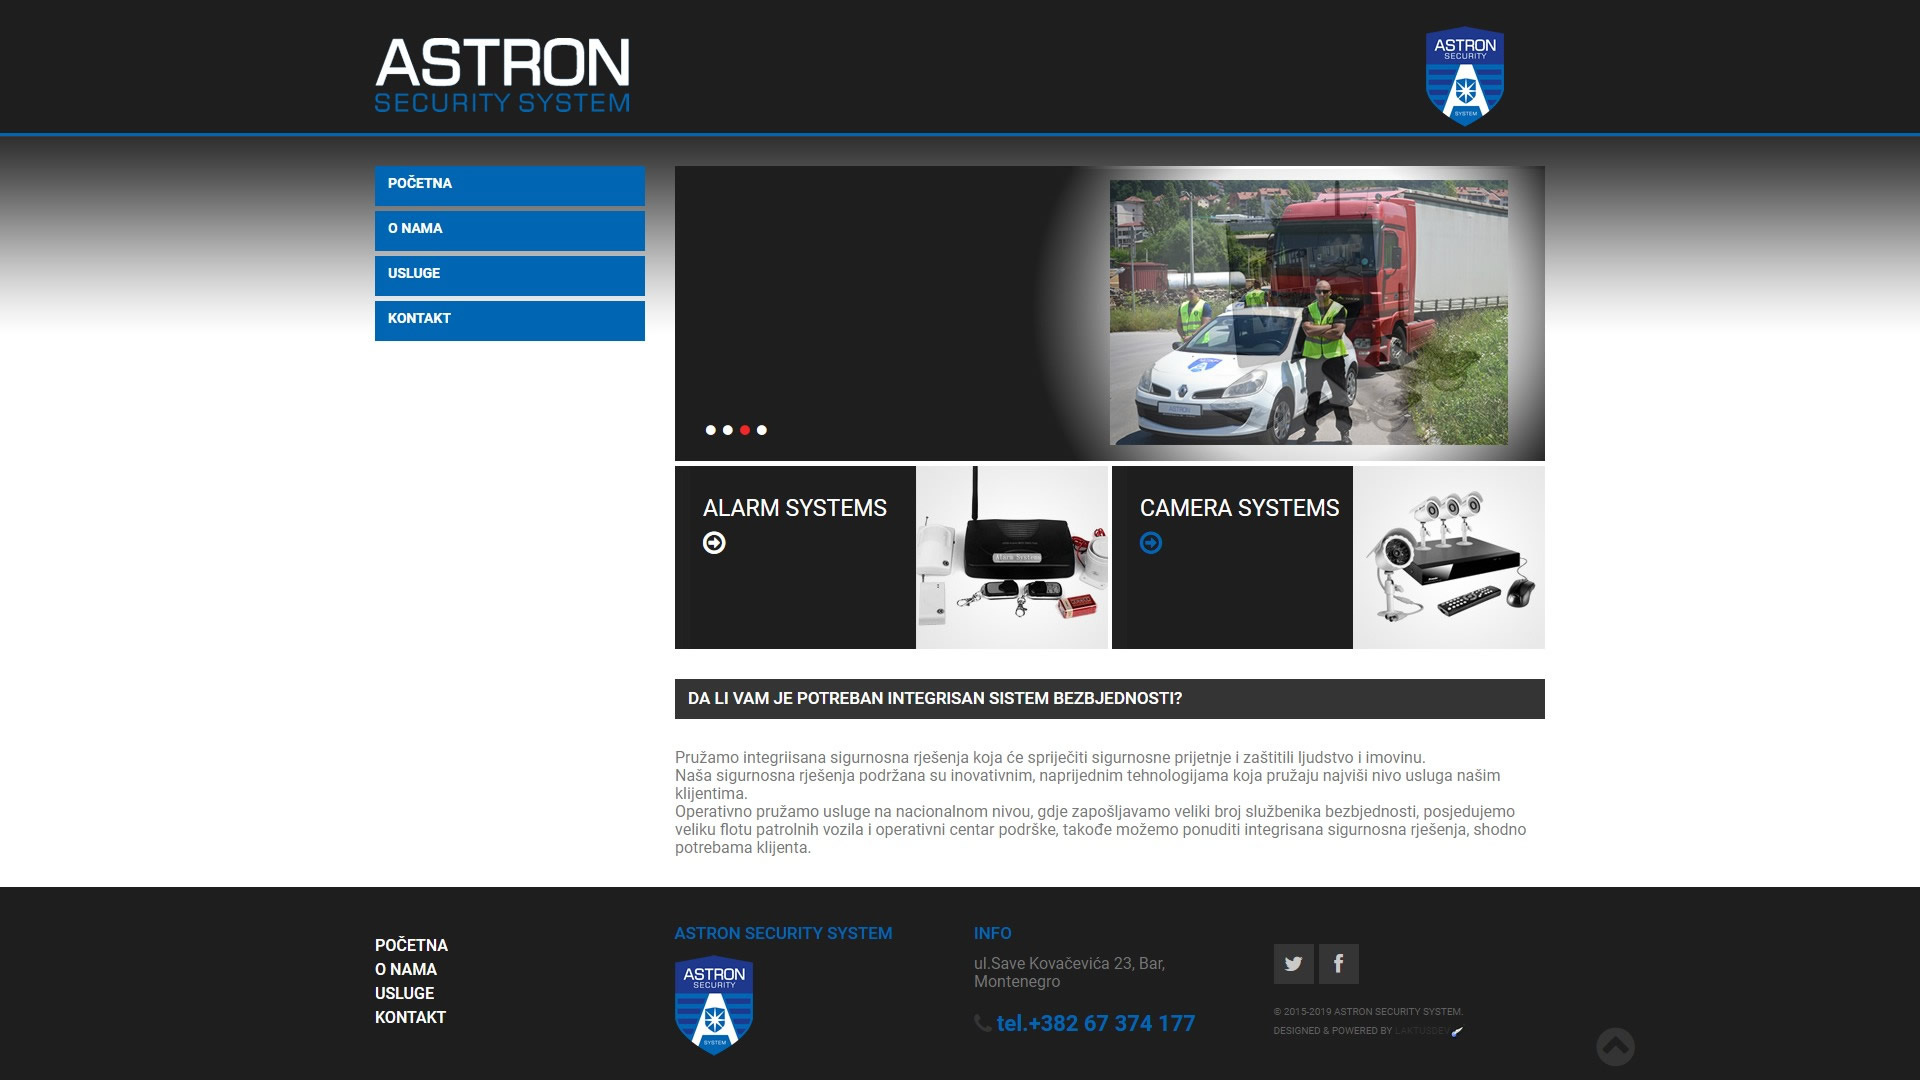 Astron security